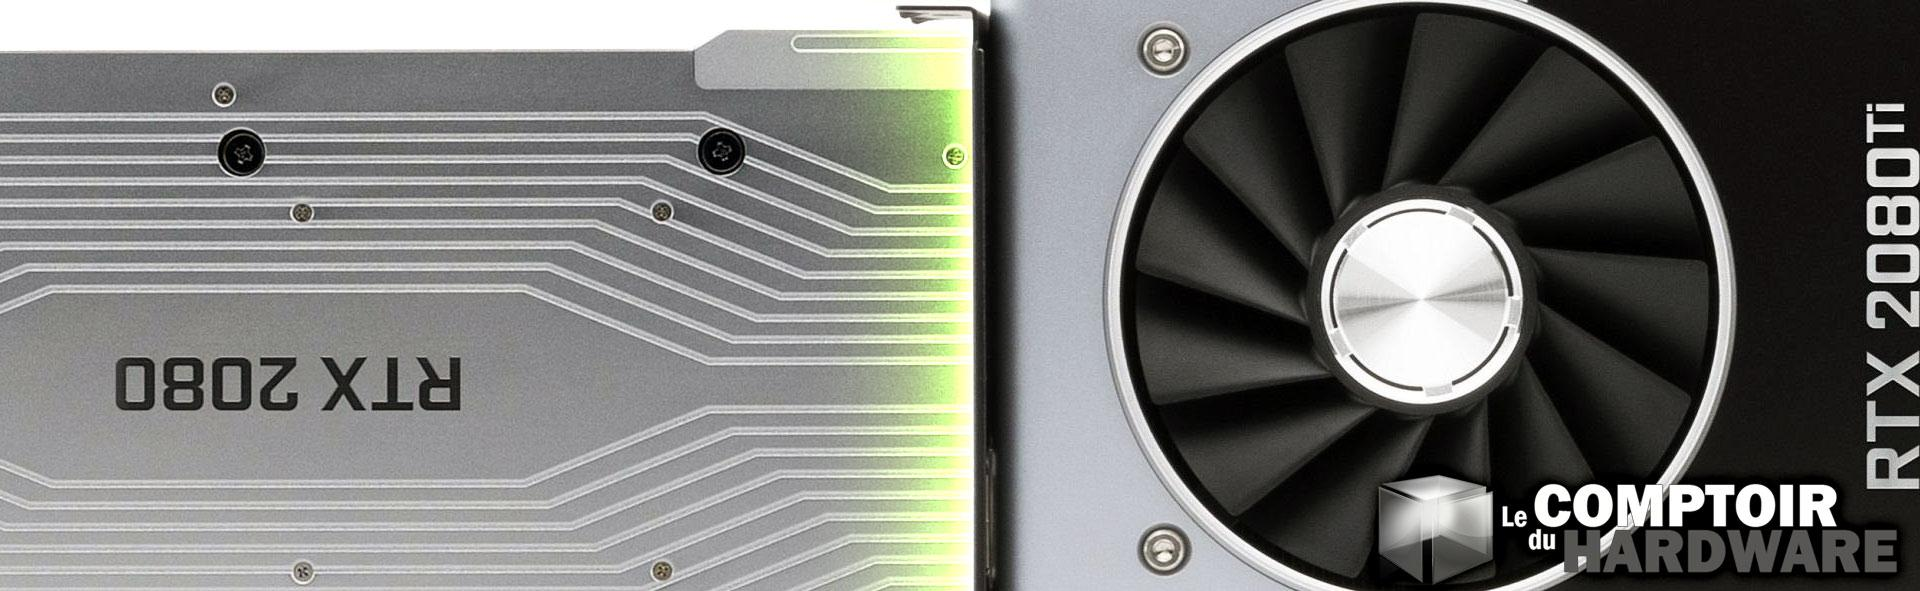 review RTX 2080 / RTX 2080 ti